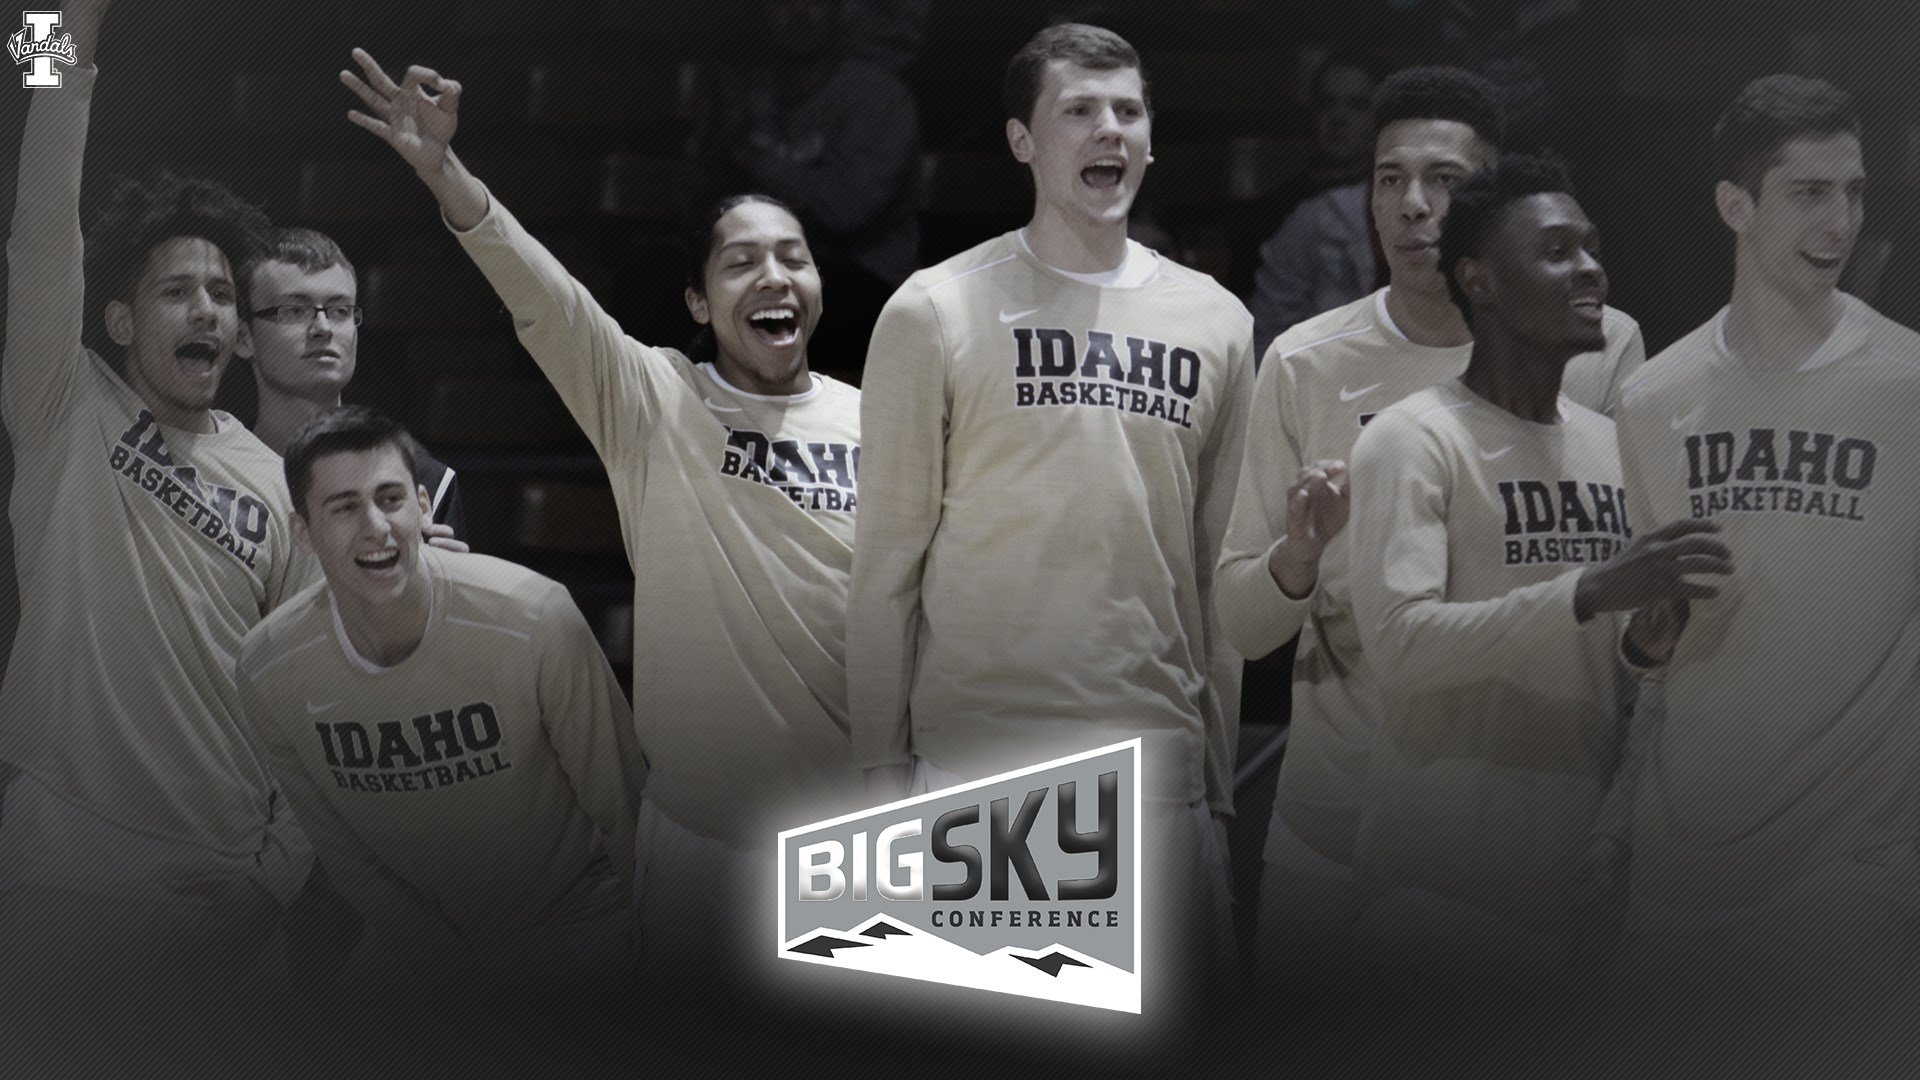 Photo: Idaho Athletics